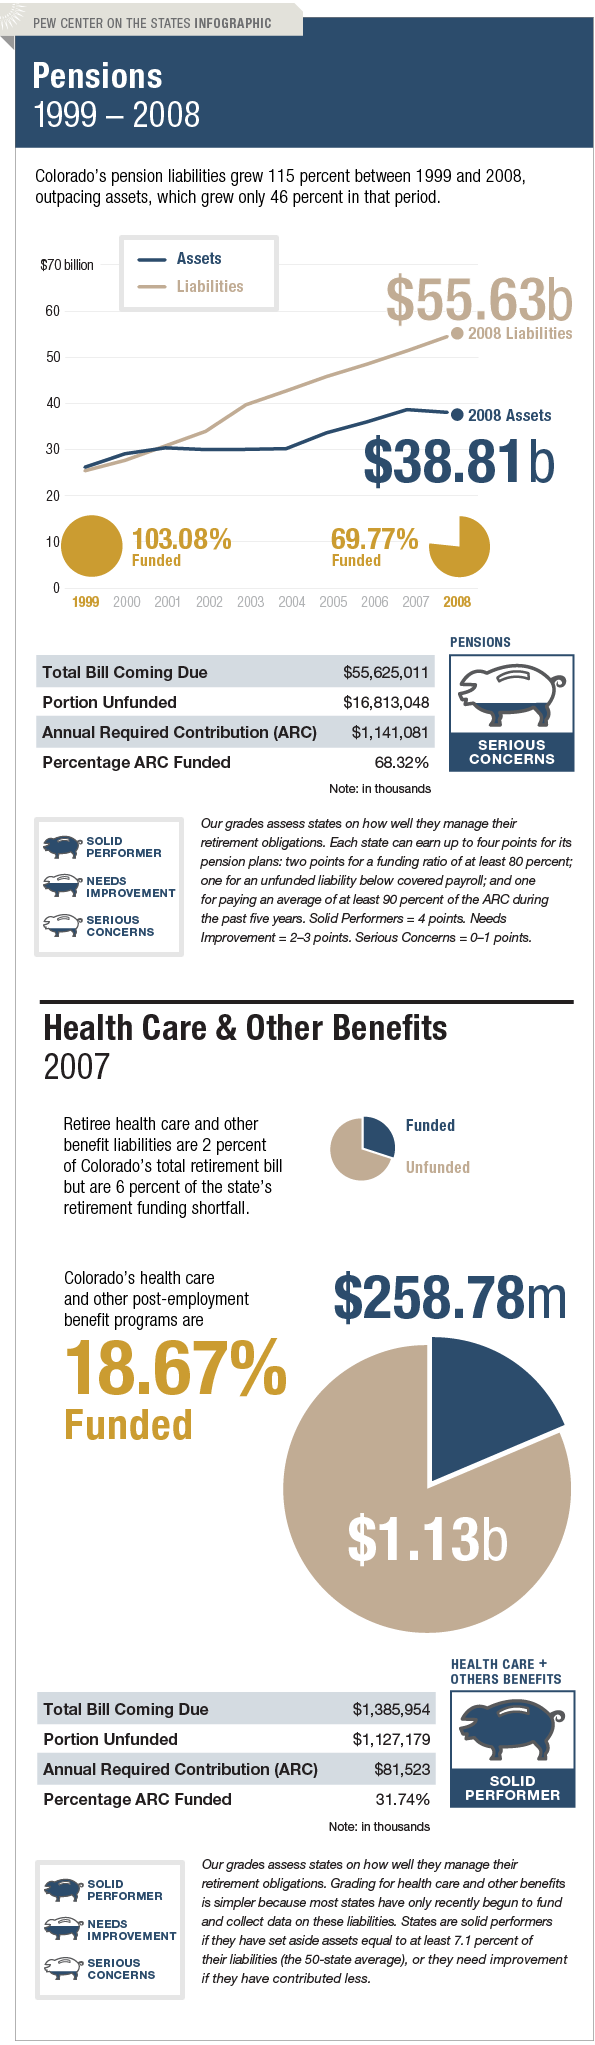 The Trillion Dollar Gap Colorado Pension Funding